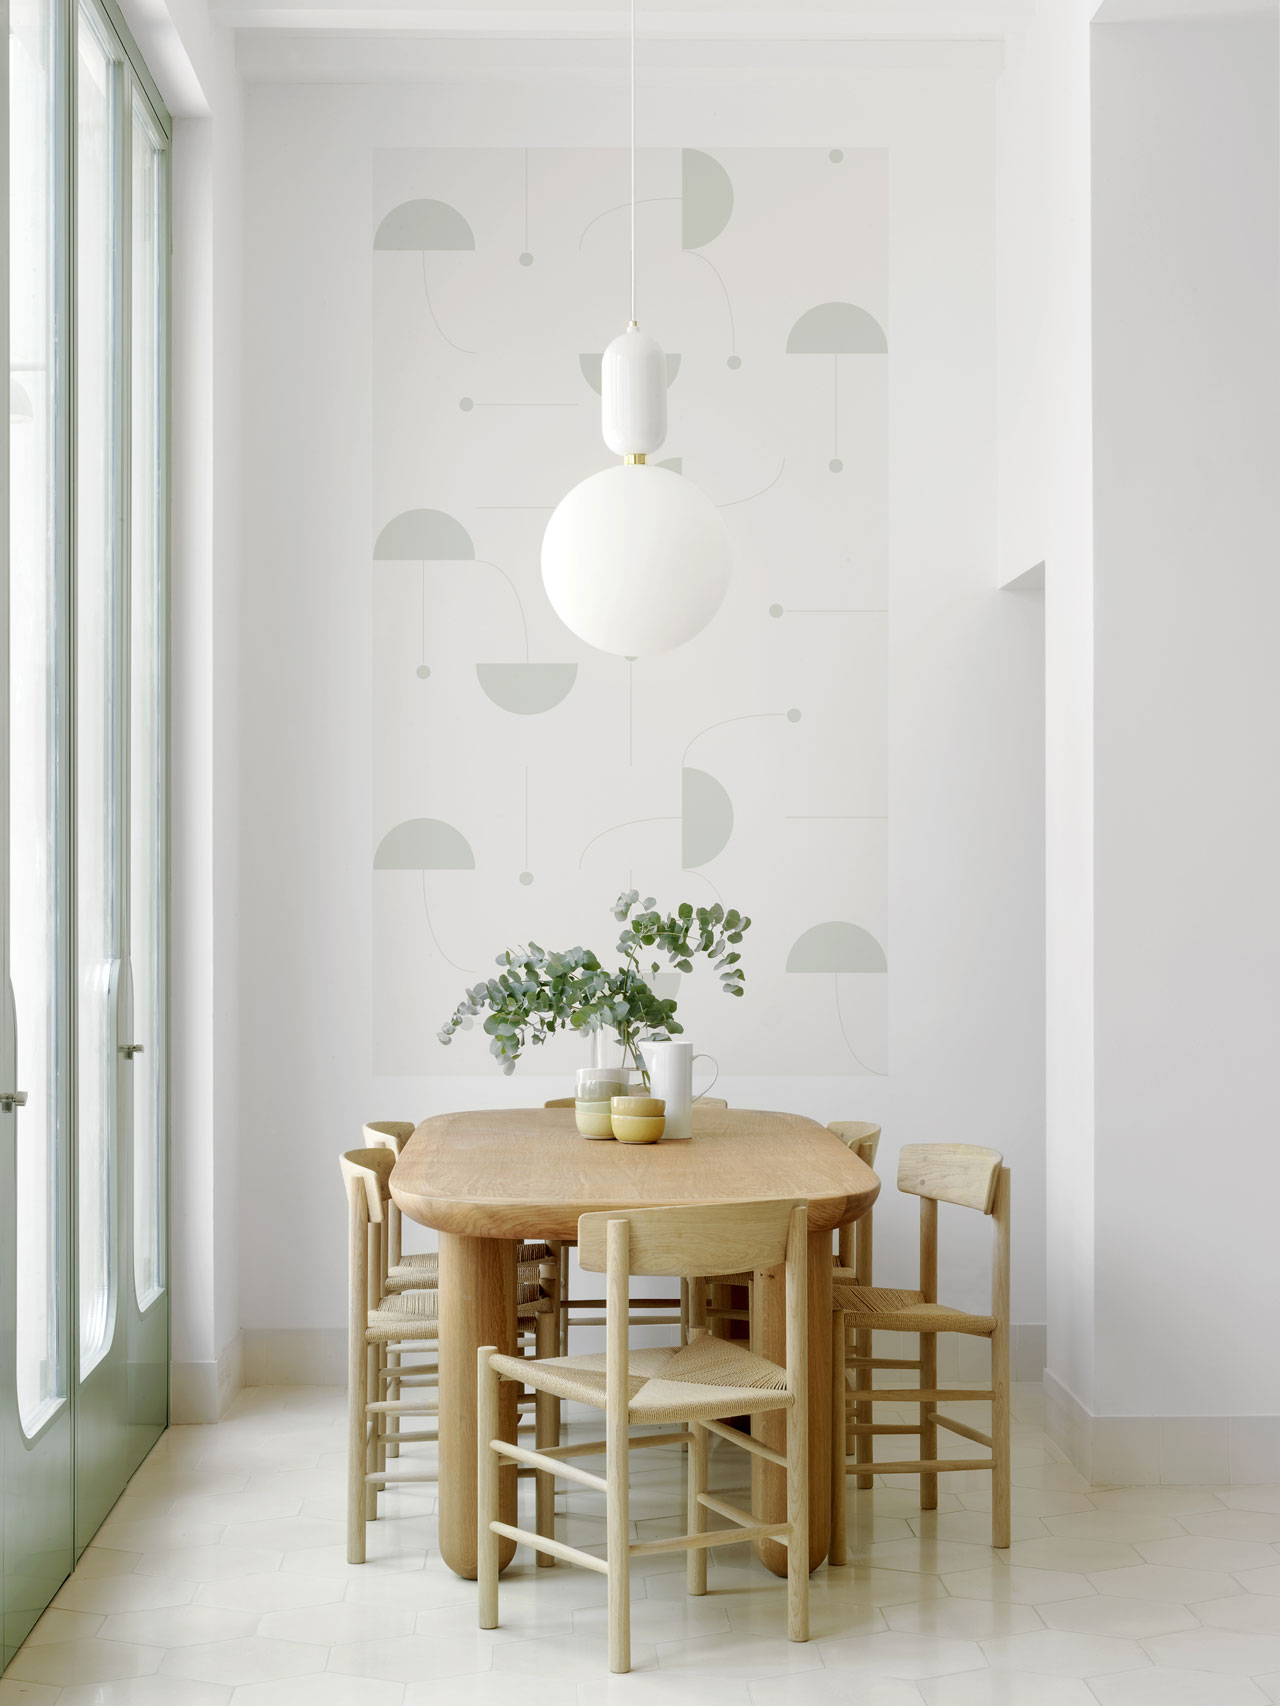 The latest collection from Eco Wallpaper features patterns created by the Spanish designer Jaime Hayon.